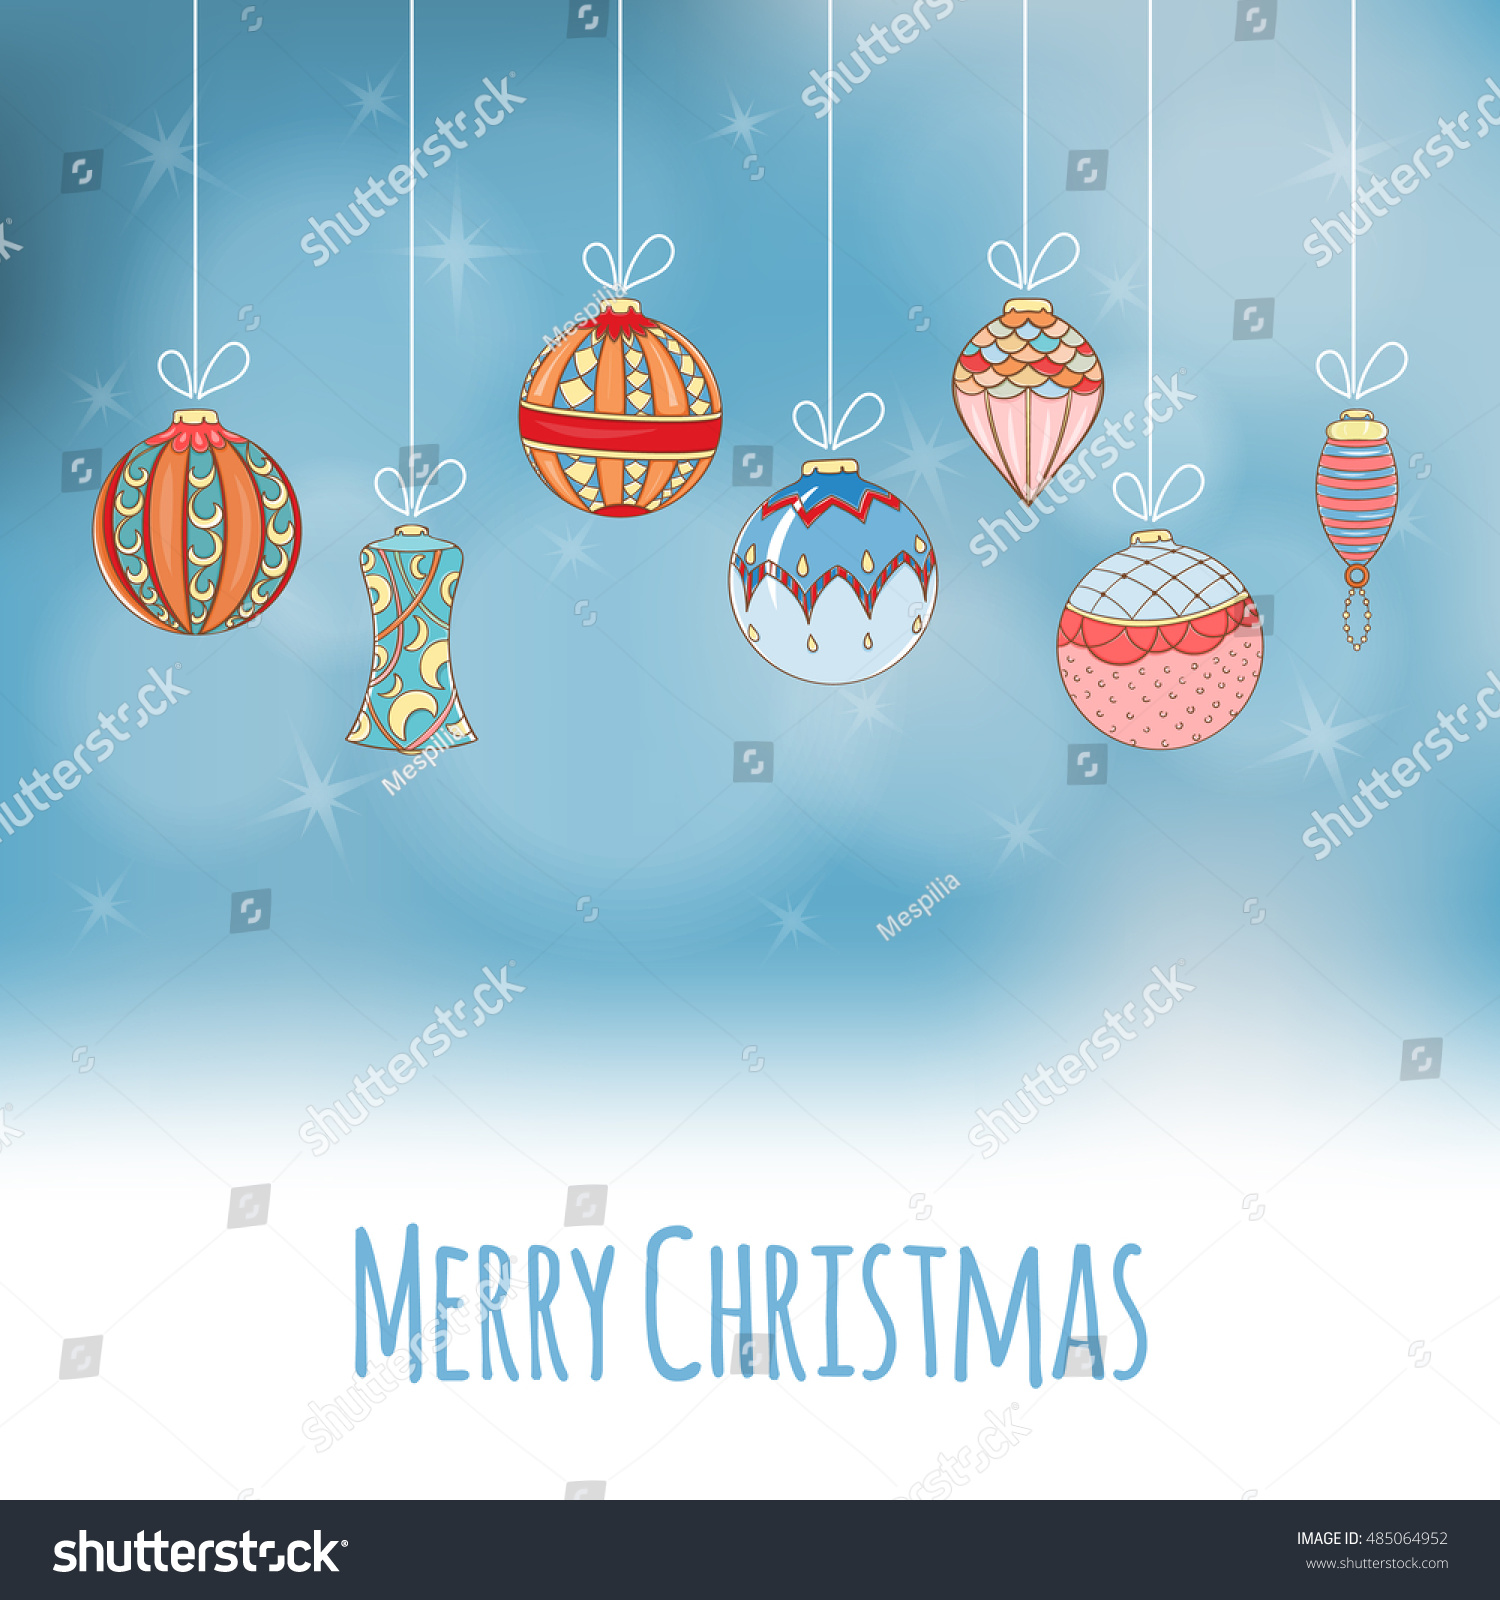 christmas and new year invitation card hand drawn vector illustration of balls on light background